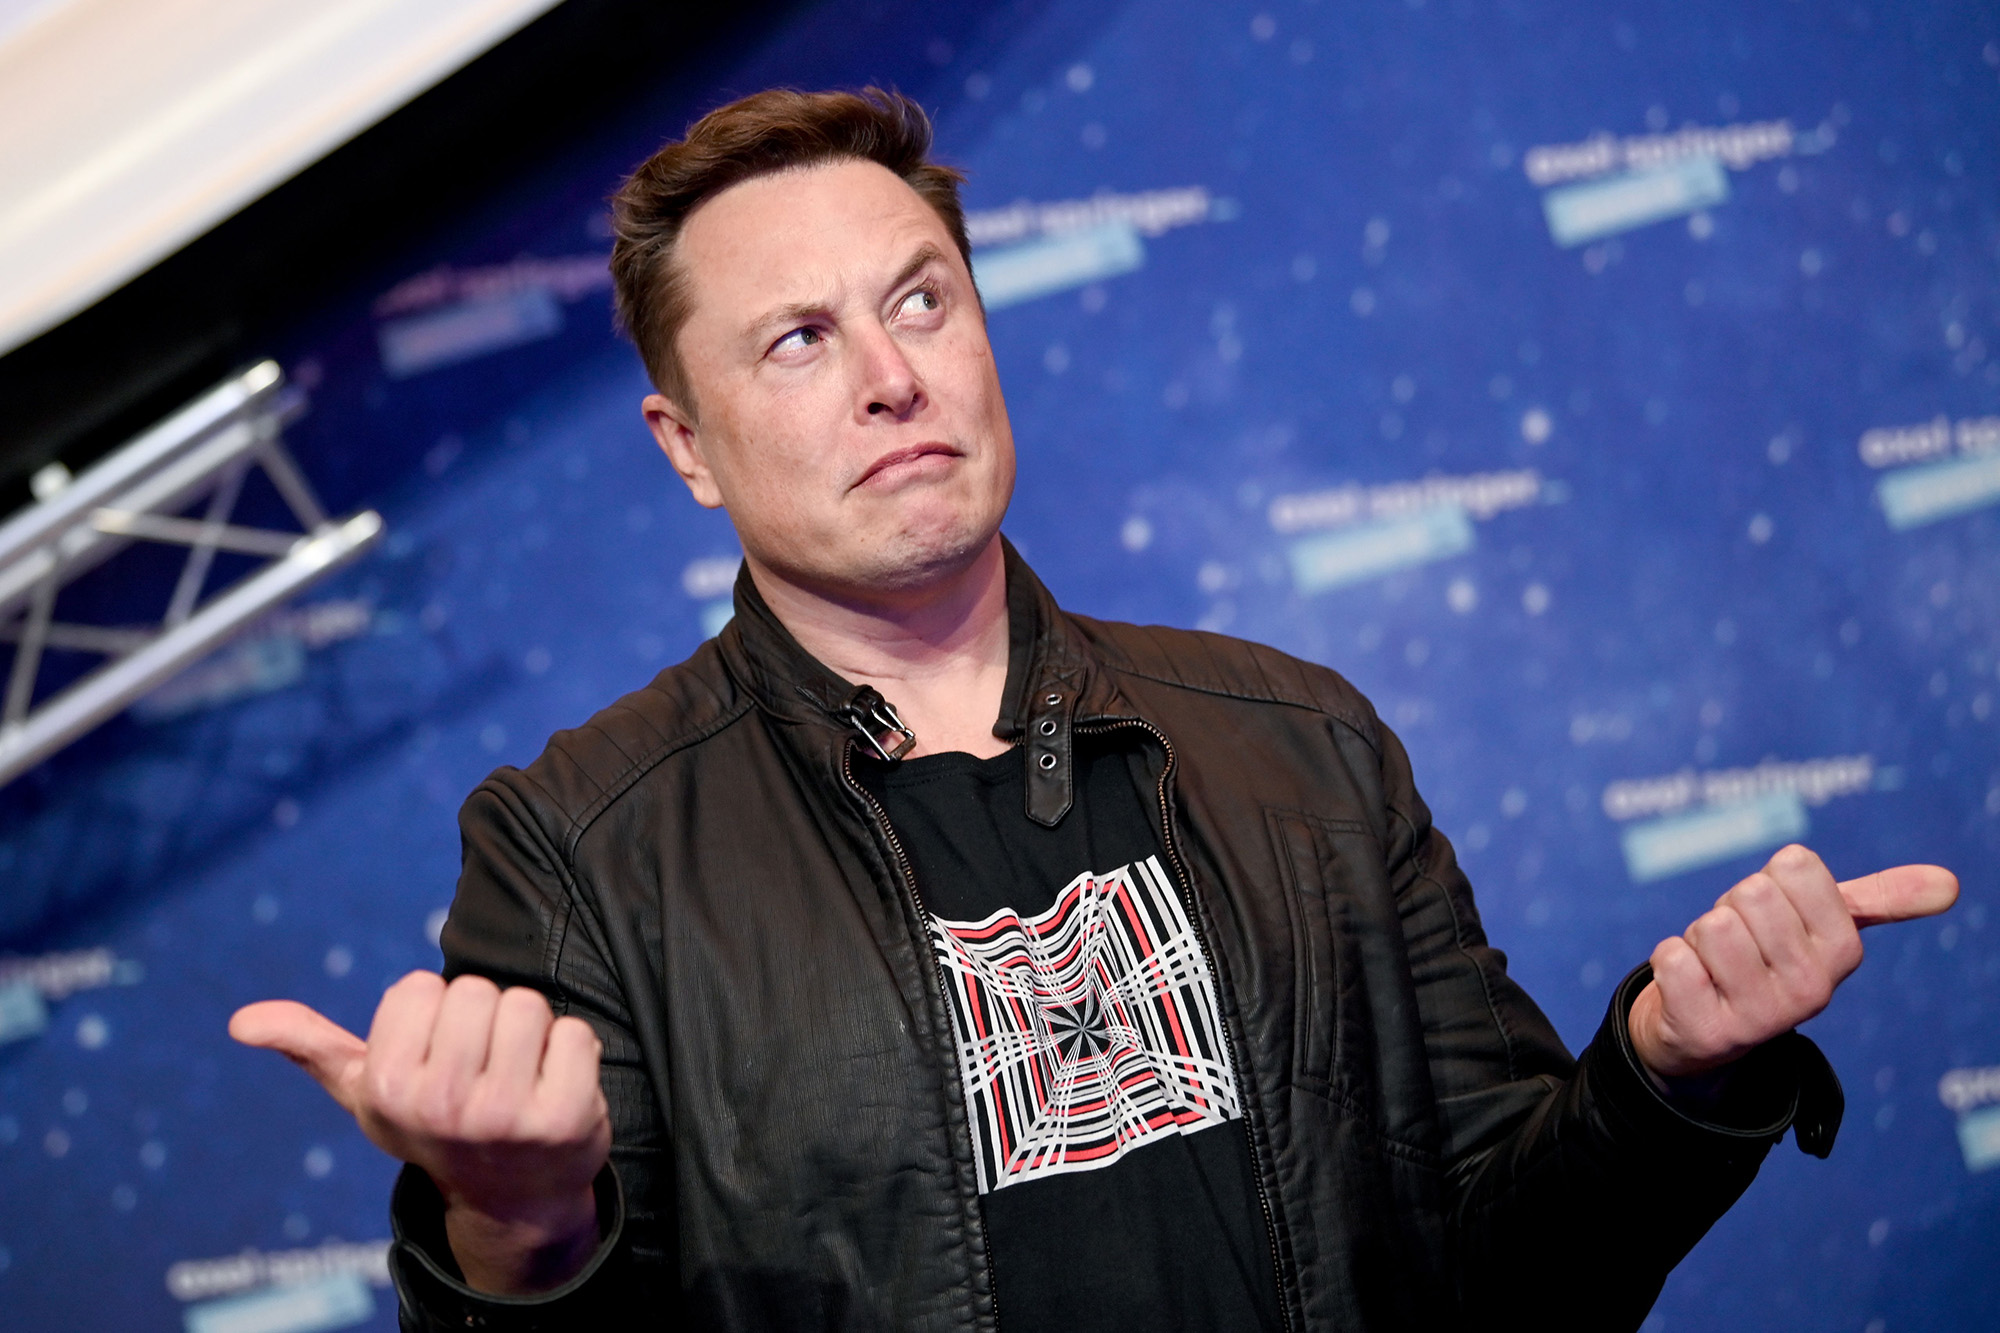 Elon Musk slammed for whining about pronouns on Twitter